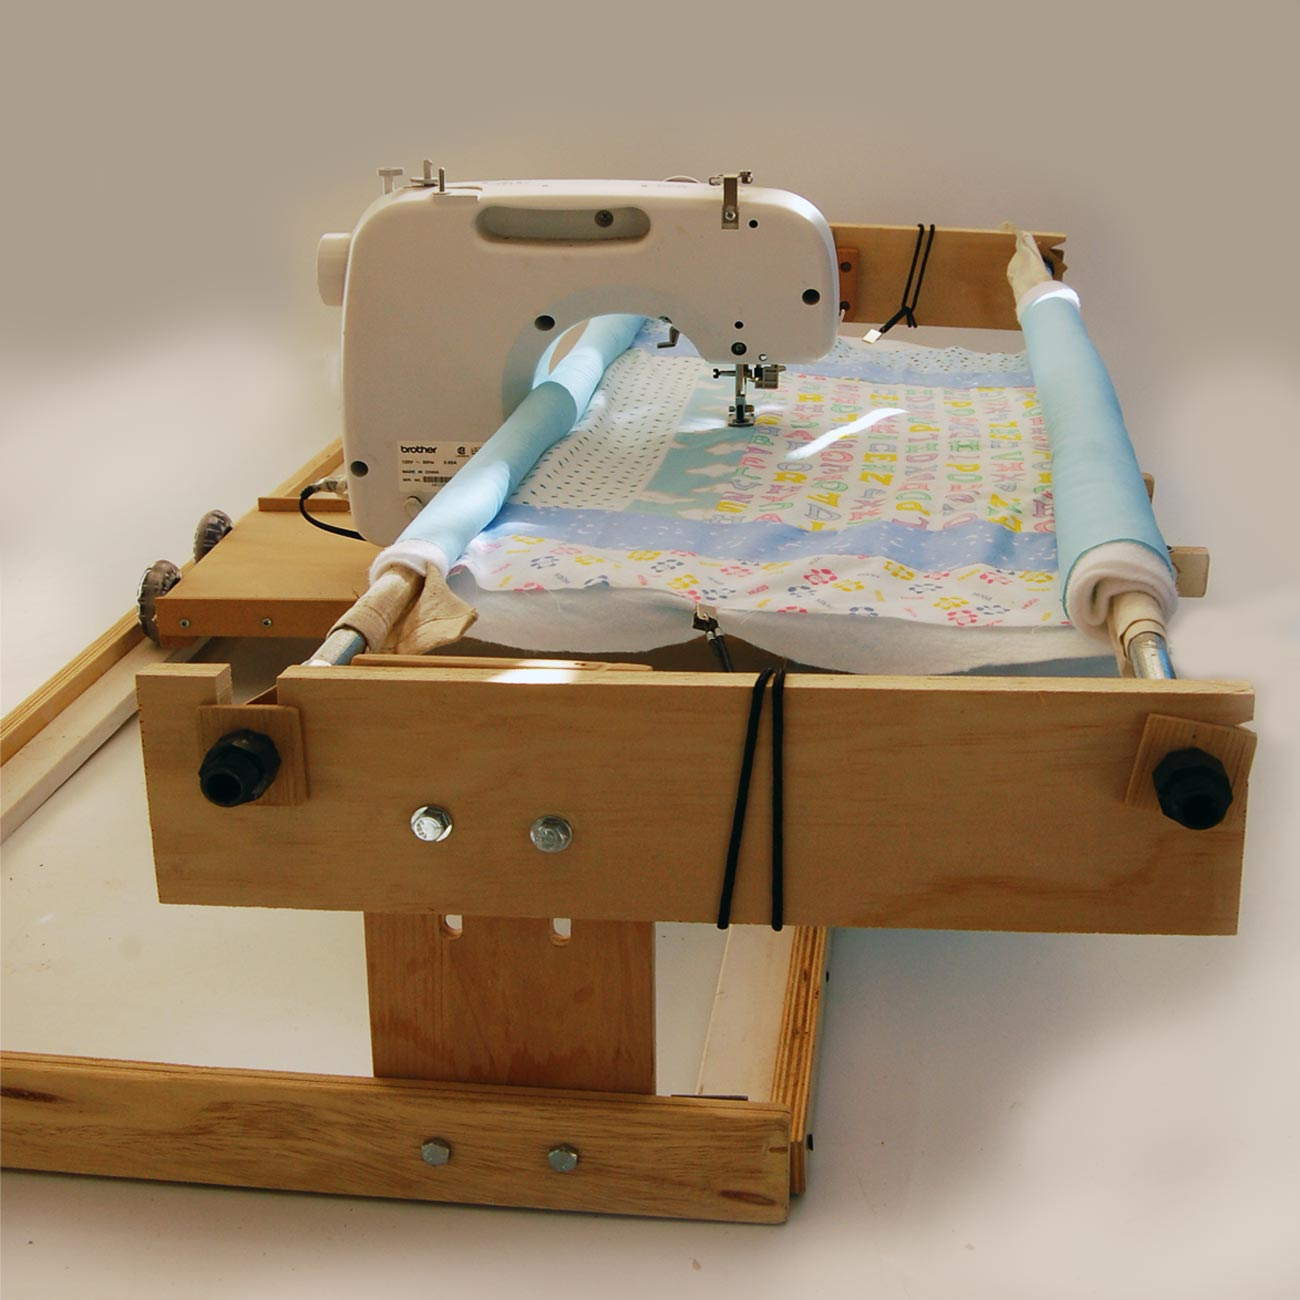 Machine quilt frames: Kit # 5 Track & Carriage Purchase